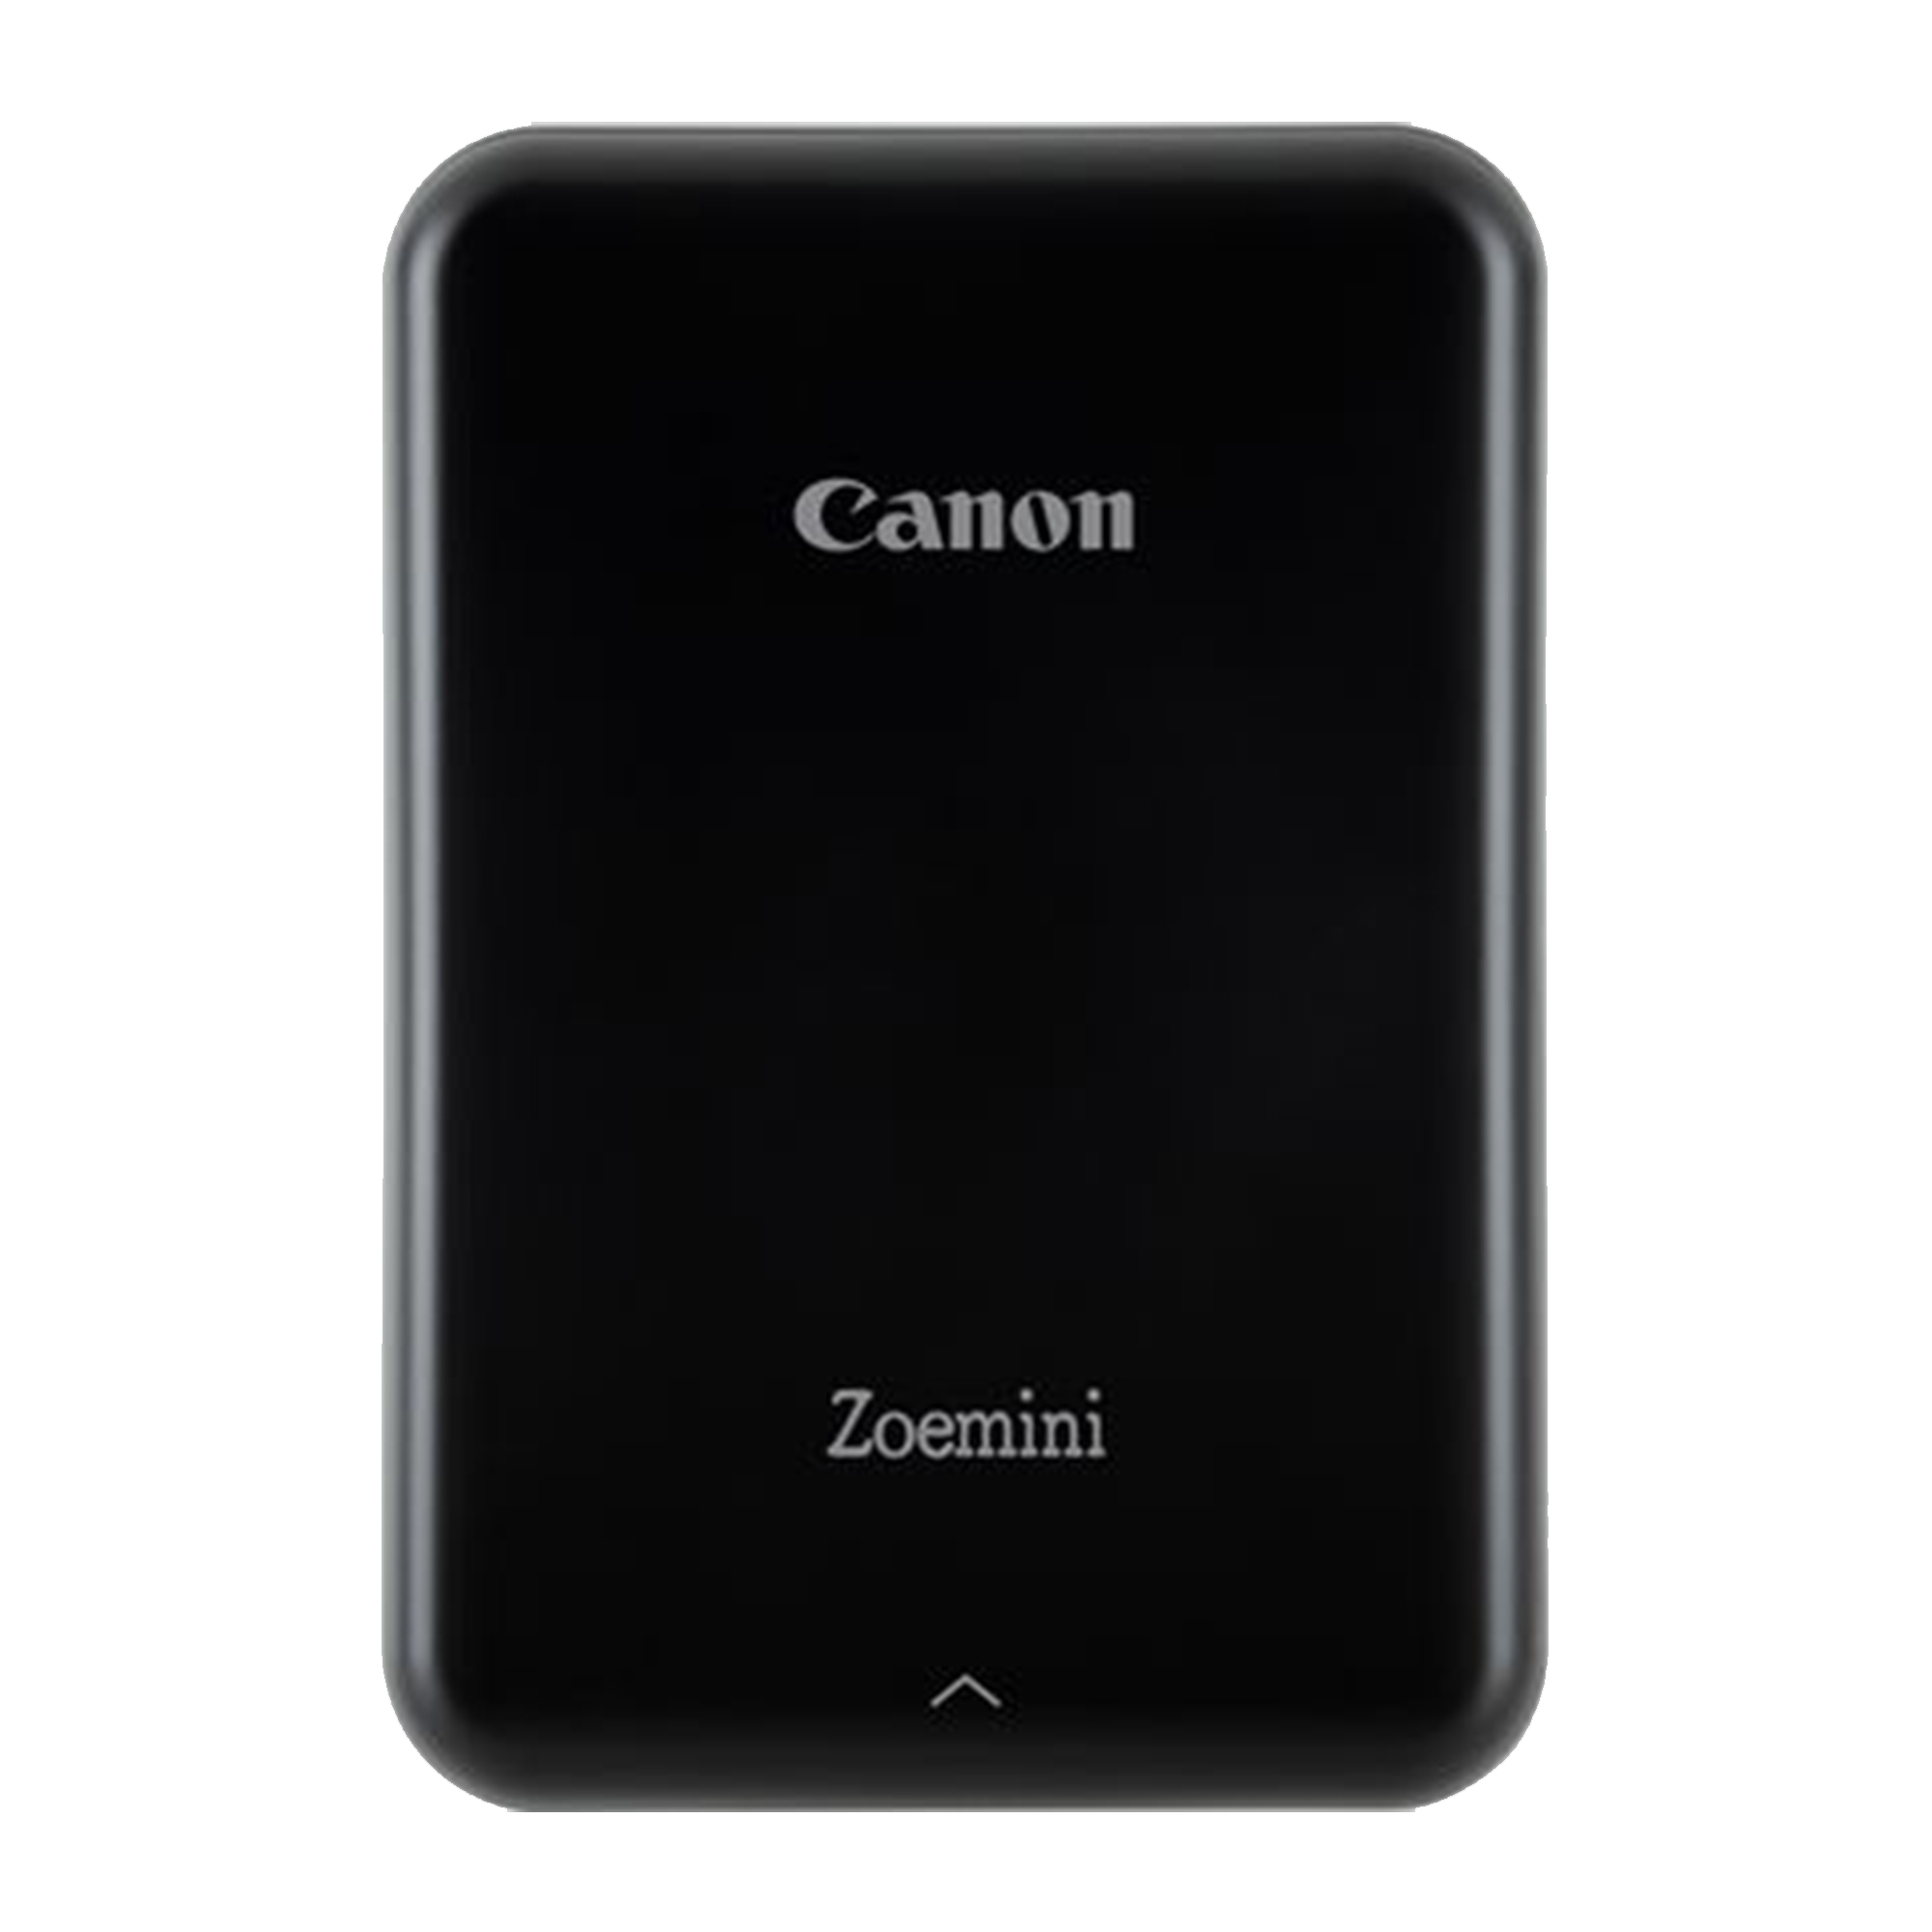 Canon Zoemini Printer - Black + Canon Zink Paper ZP-2030 20 Sheets